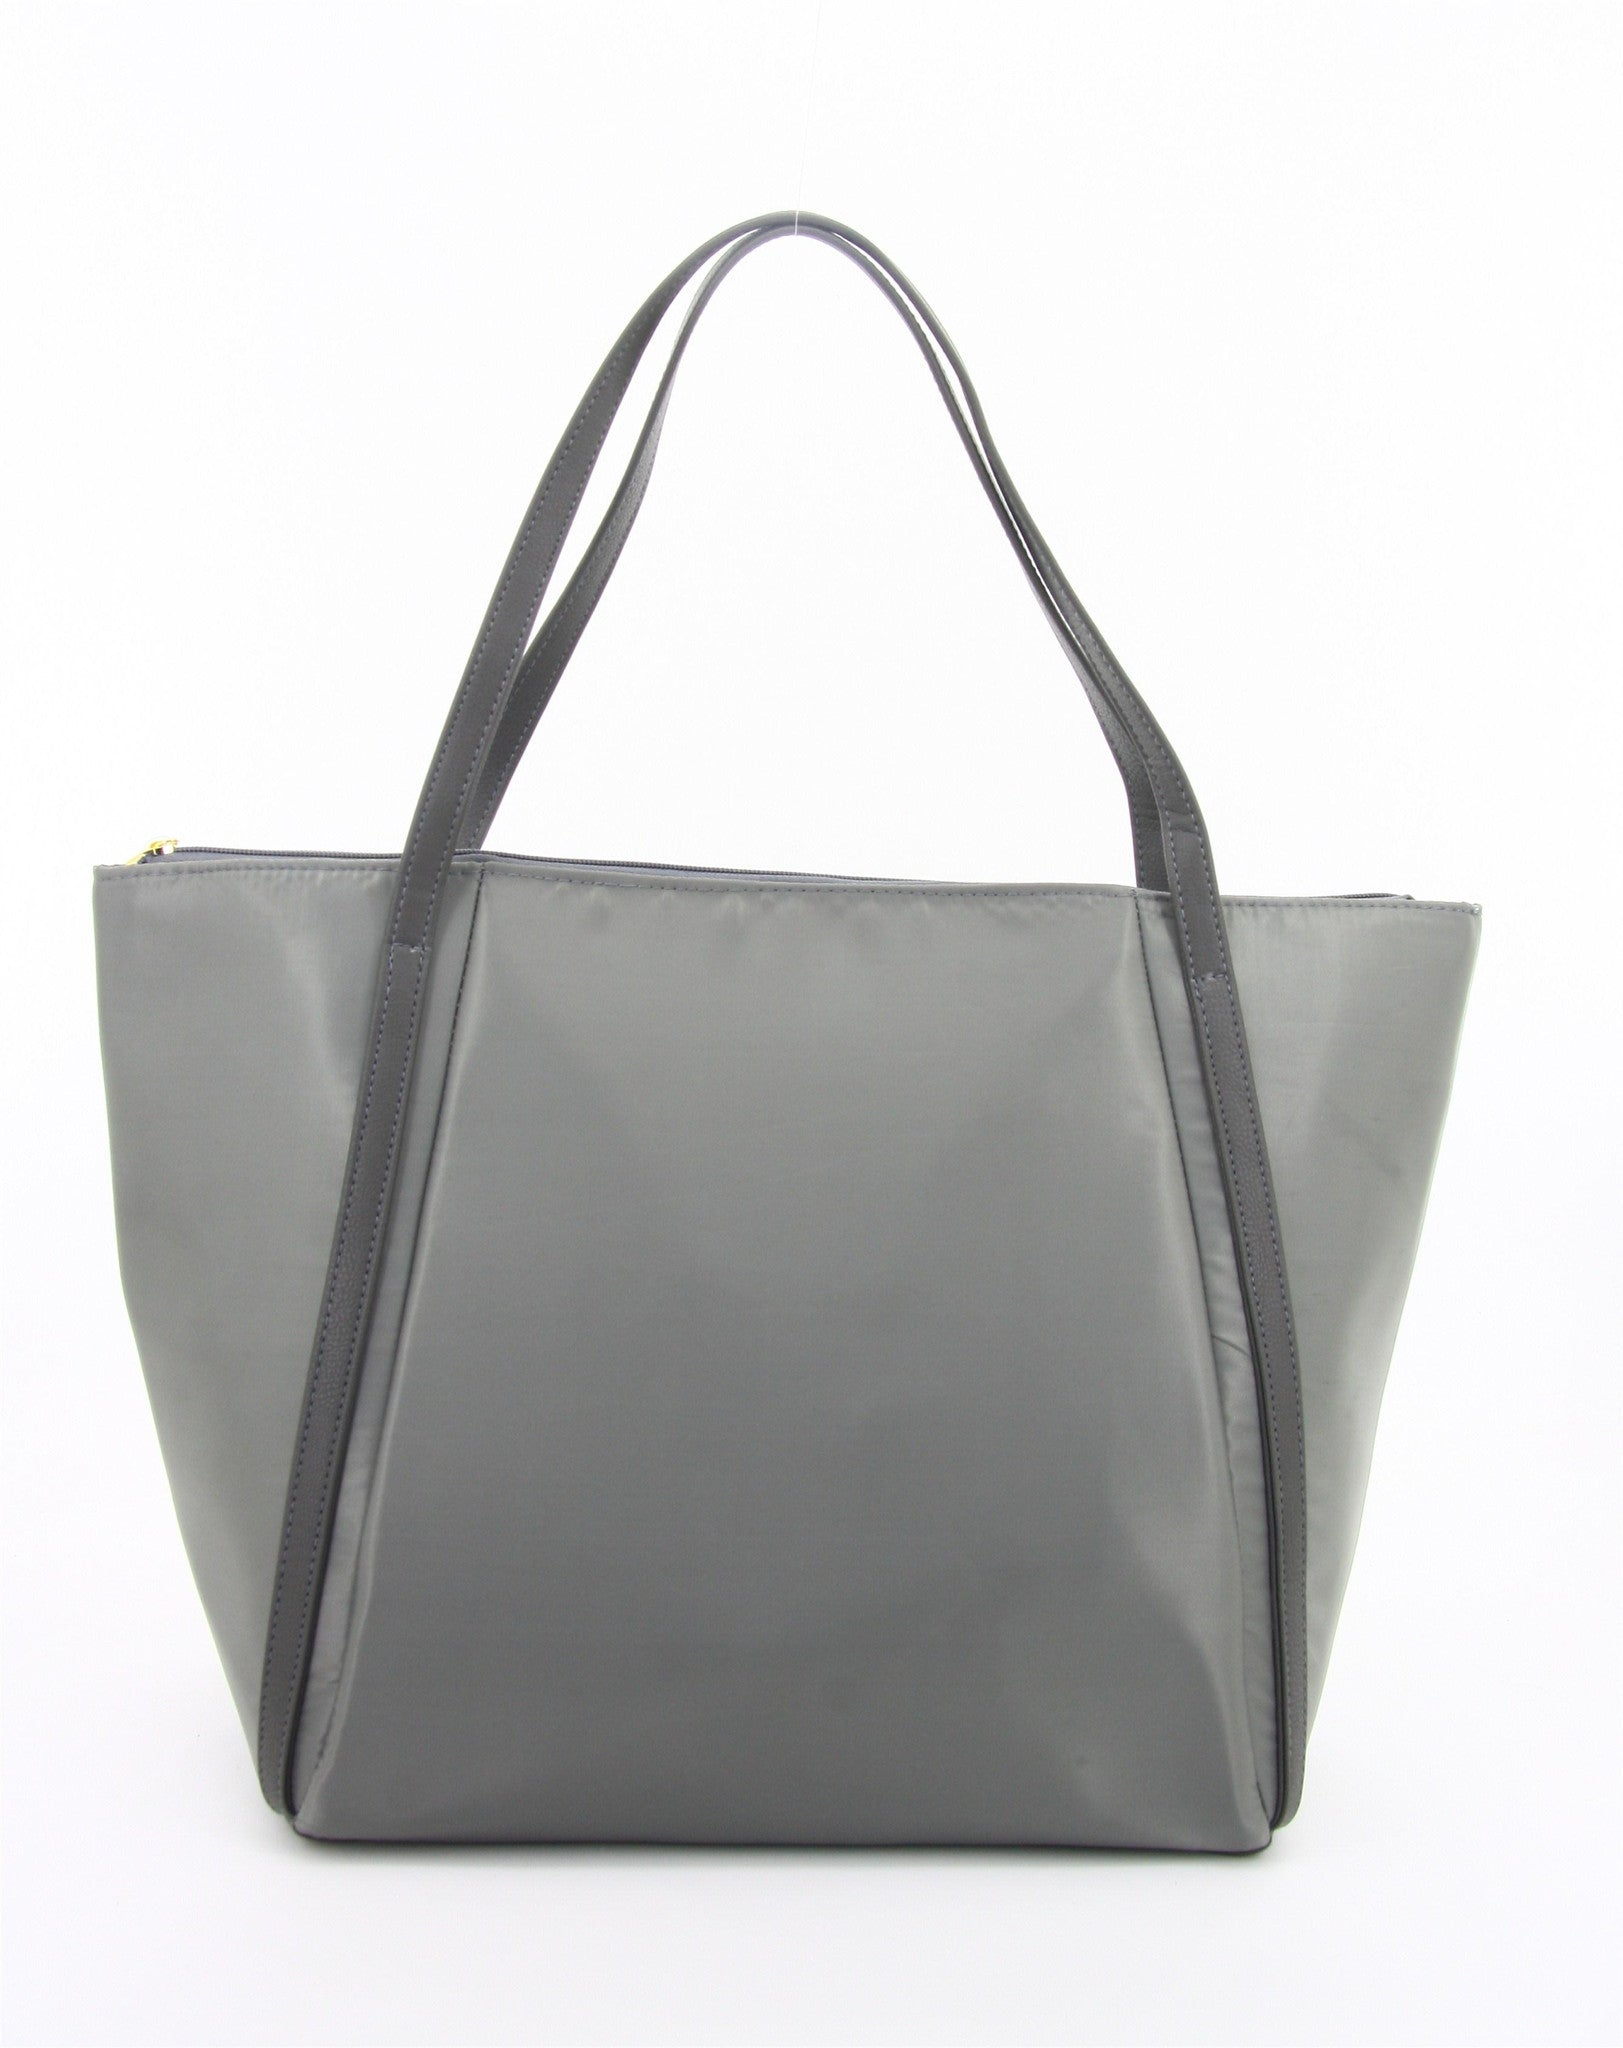 C16MR686GY TORY MULTI-FUNCTION TOTE (GRAY)